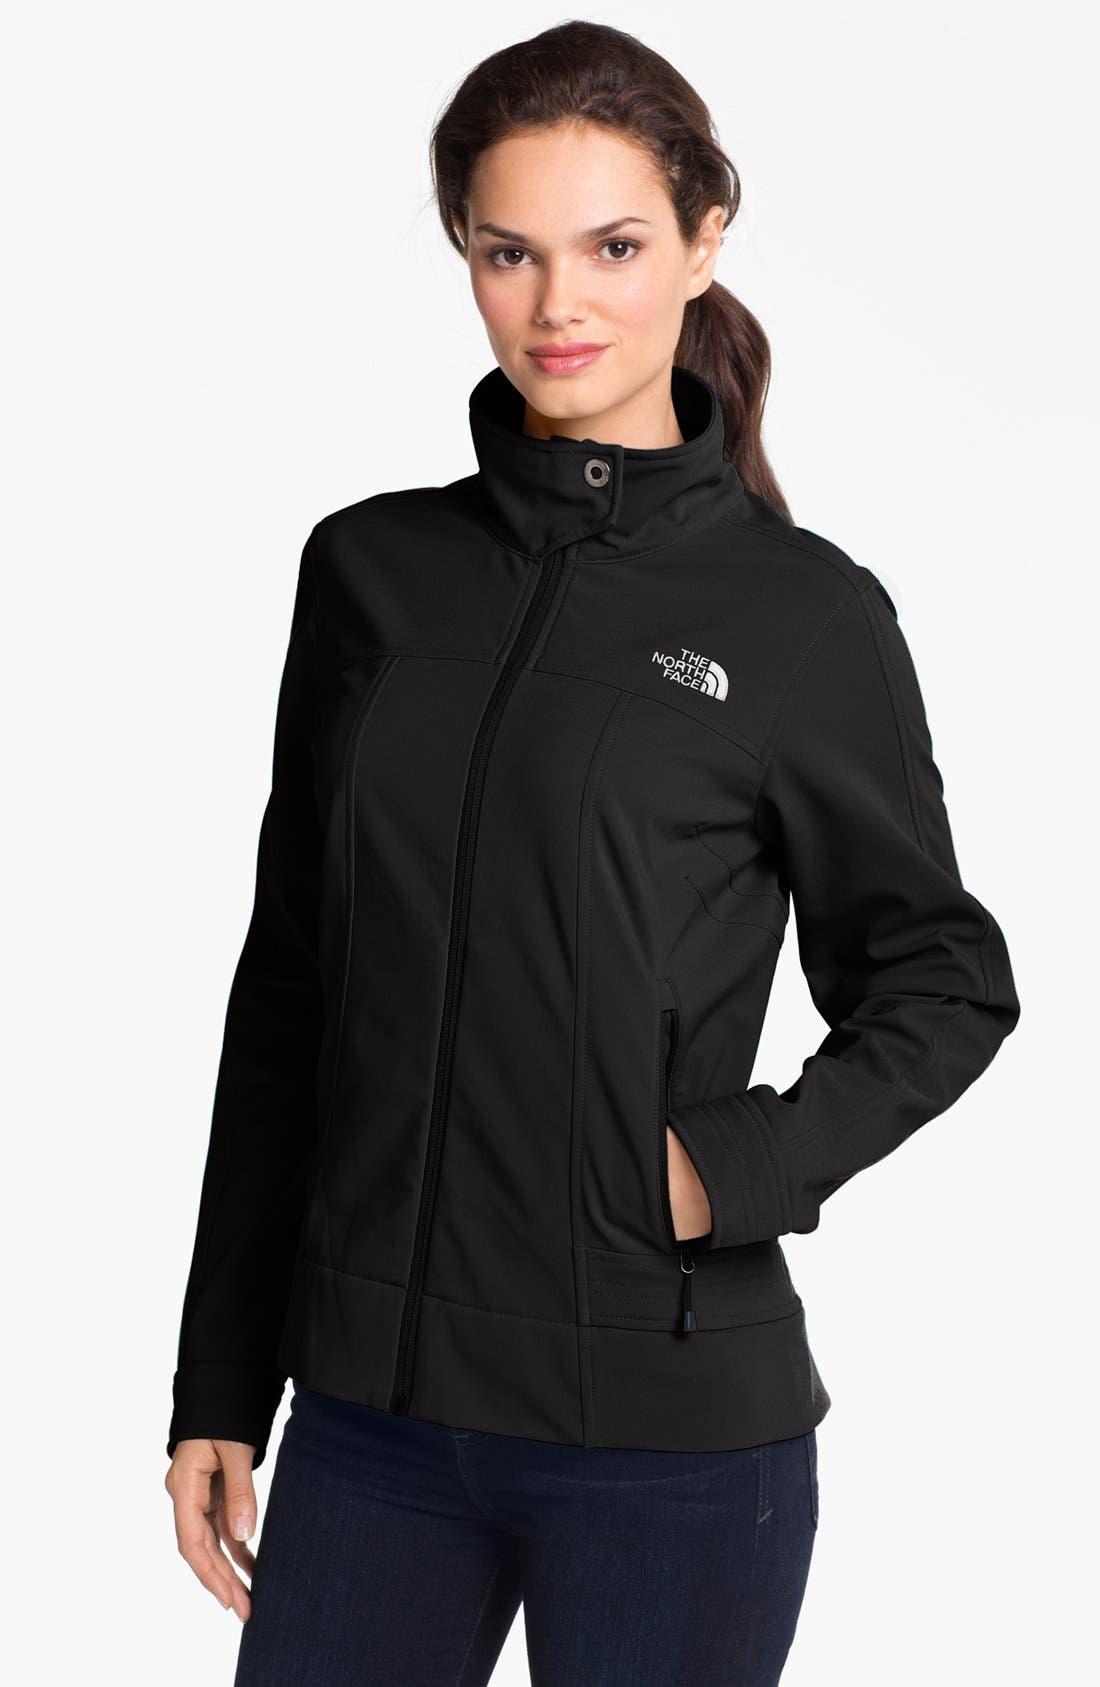 Alternate Image 1 Selected - The North Face 'Calentito' Soft Shell Jacket